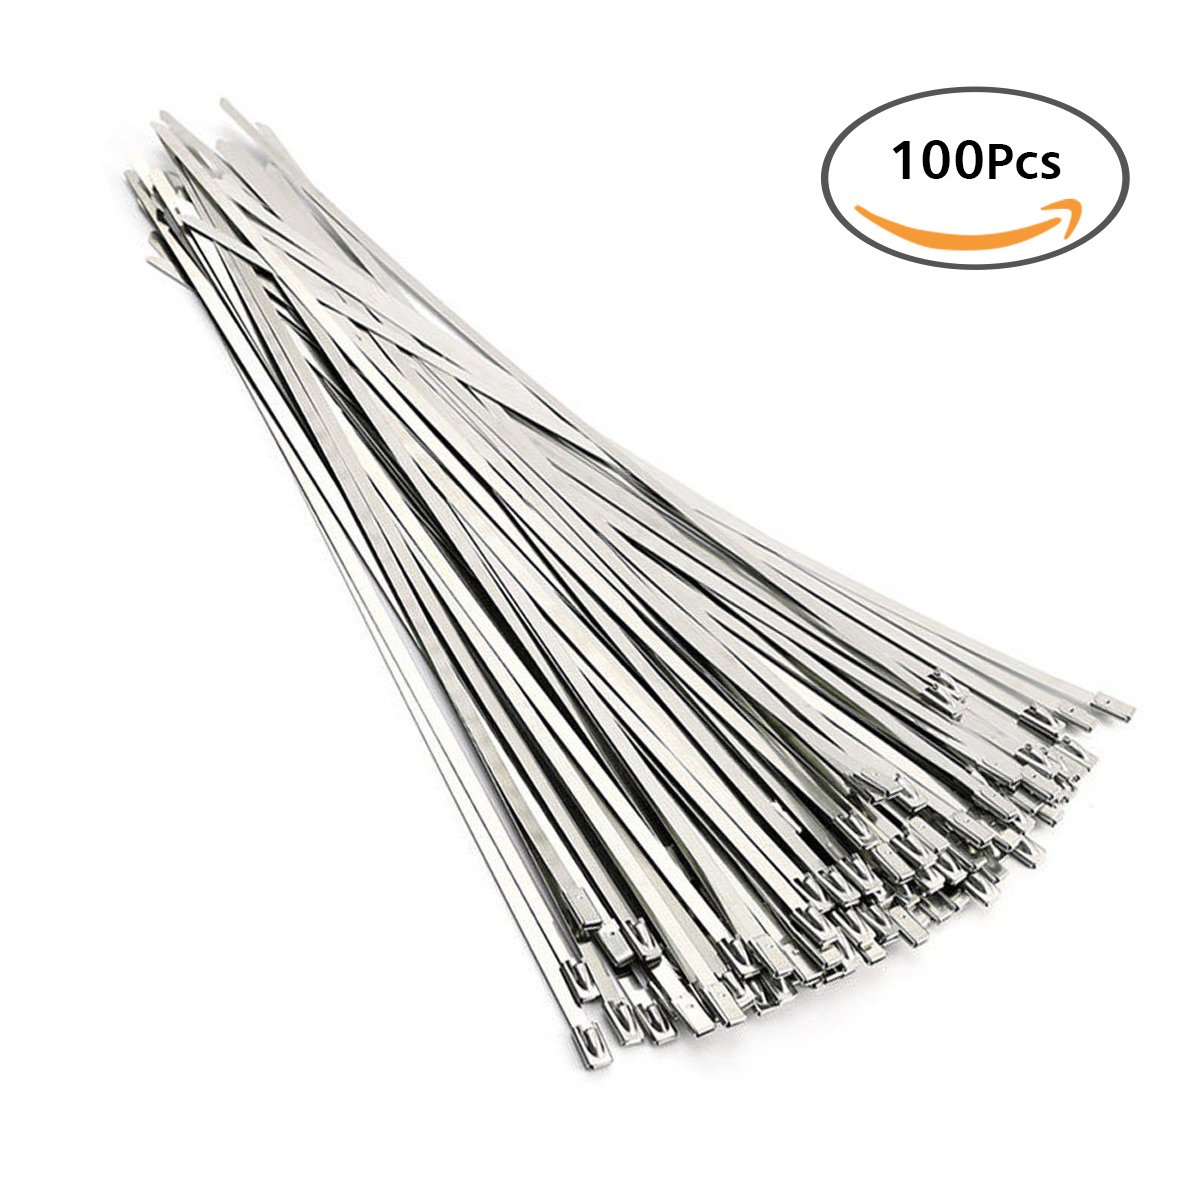 Stainless Steel Cable Tie, URBEST 304 Stainless Steel 11.8'' Cable Zip Ties Exhaust Wrap Coated Locking, 100pcs